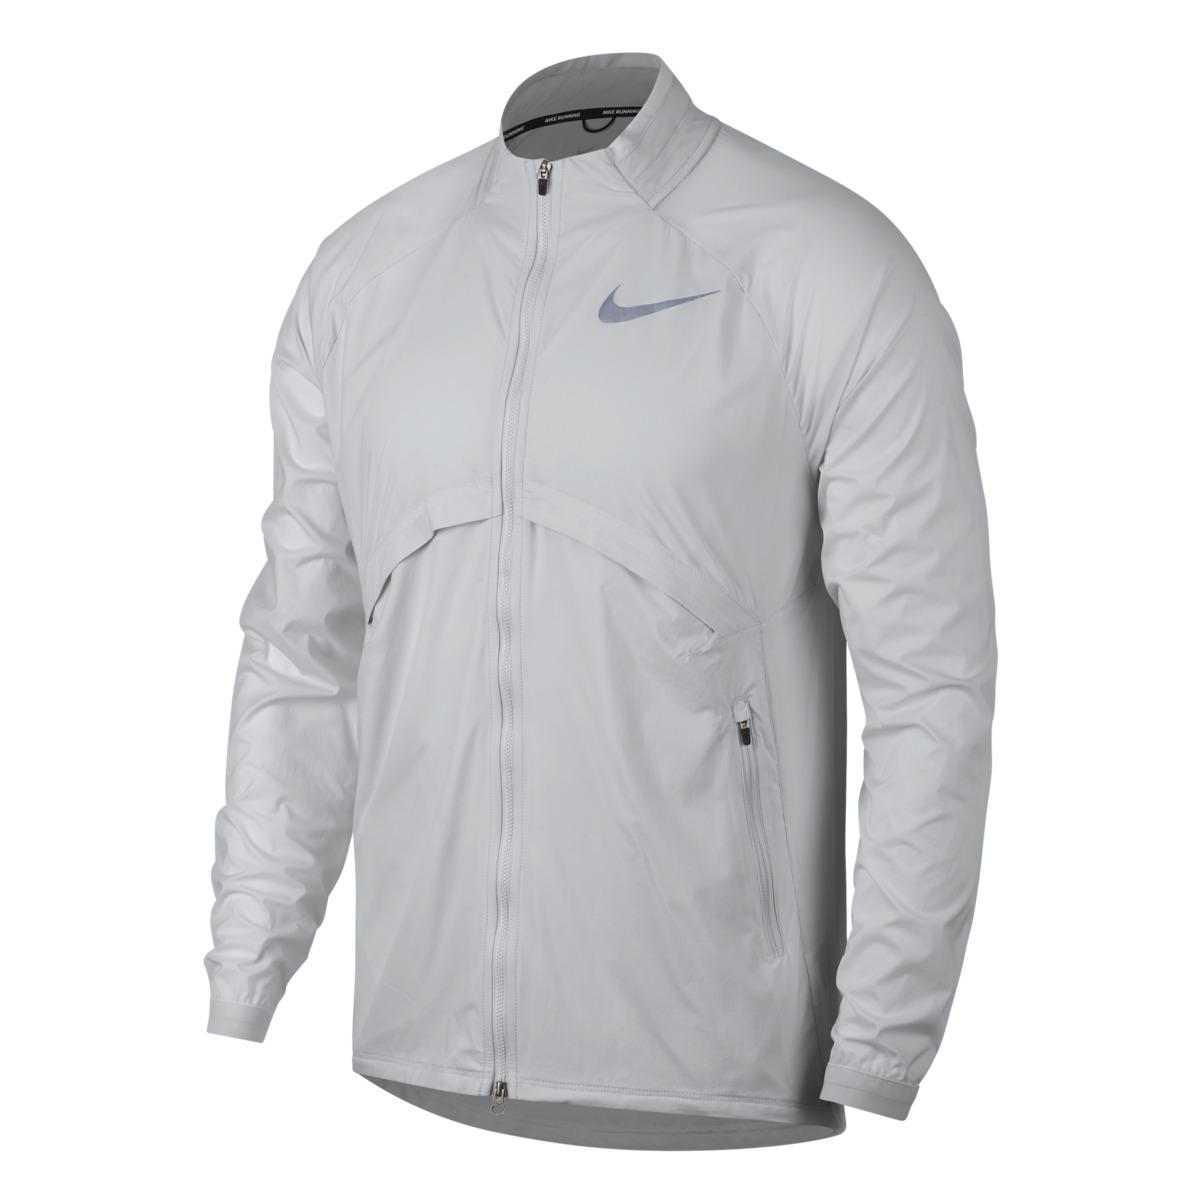 44f037ff47ed Lyst - Nike Shield Convertible Windcheater Jacket in White for Men